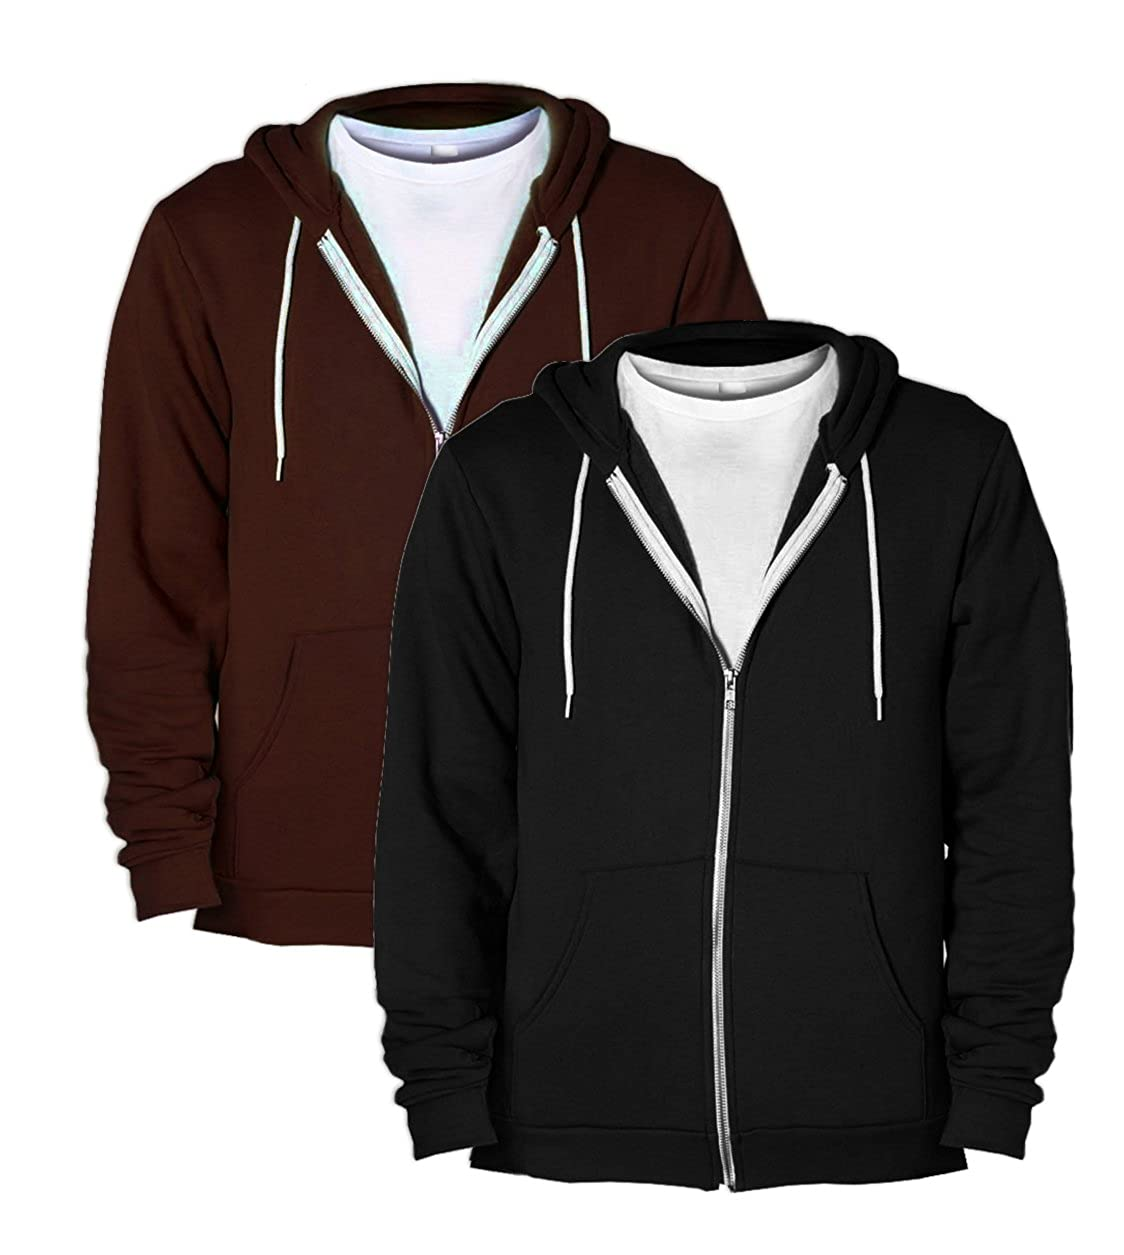 1 Brown American Apparel F497 Unisex Flex Fleece Zip Hoodie XX-Small 1 Black